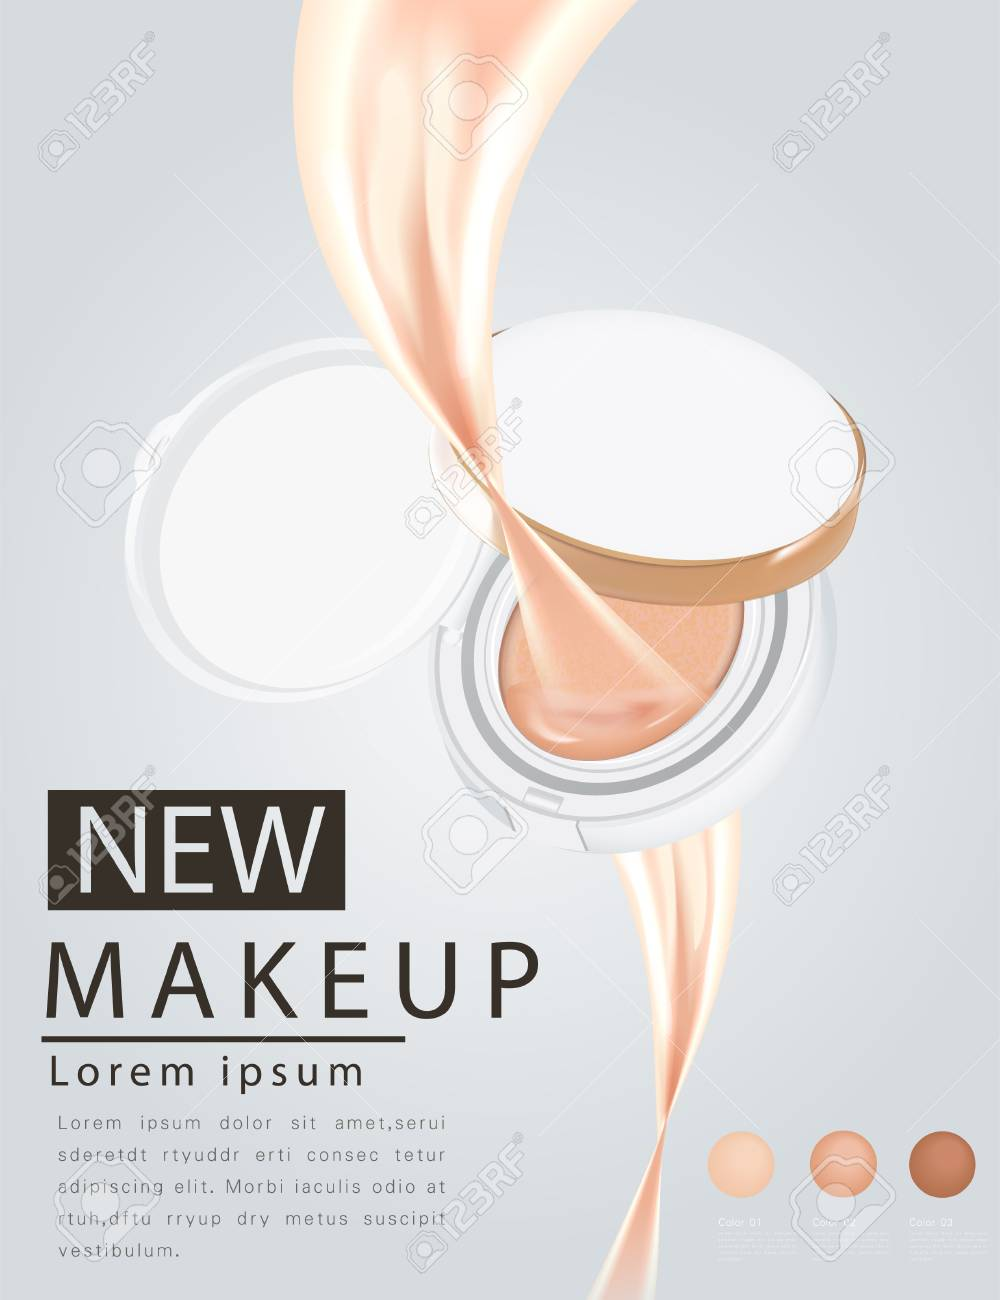 Compact foundation ads, attractive makeup essential product with texture isolated on glitter background, 3d illustration - 109626421